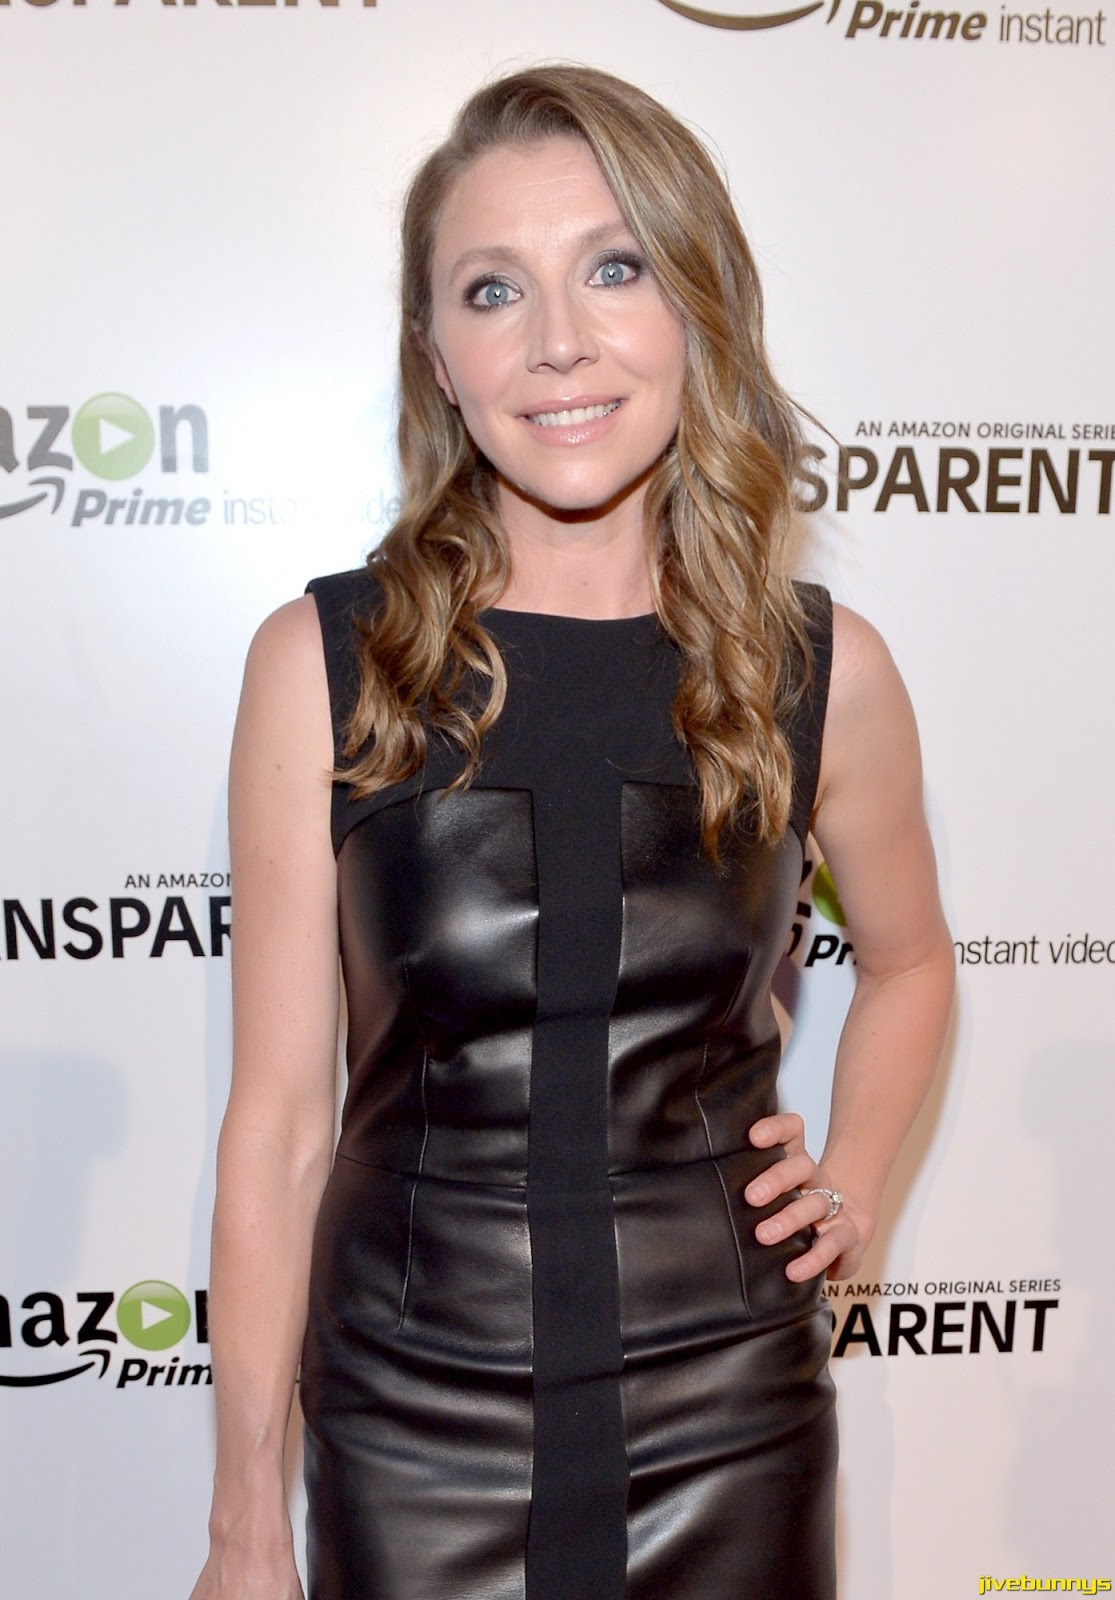 Sarah Chalke - 'Transparent' Premiere Screening in LA 9/15/14